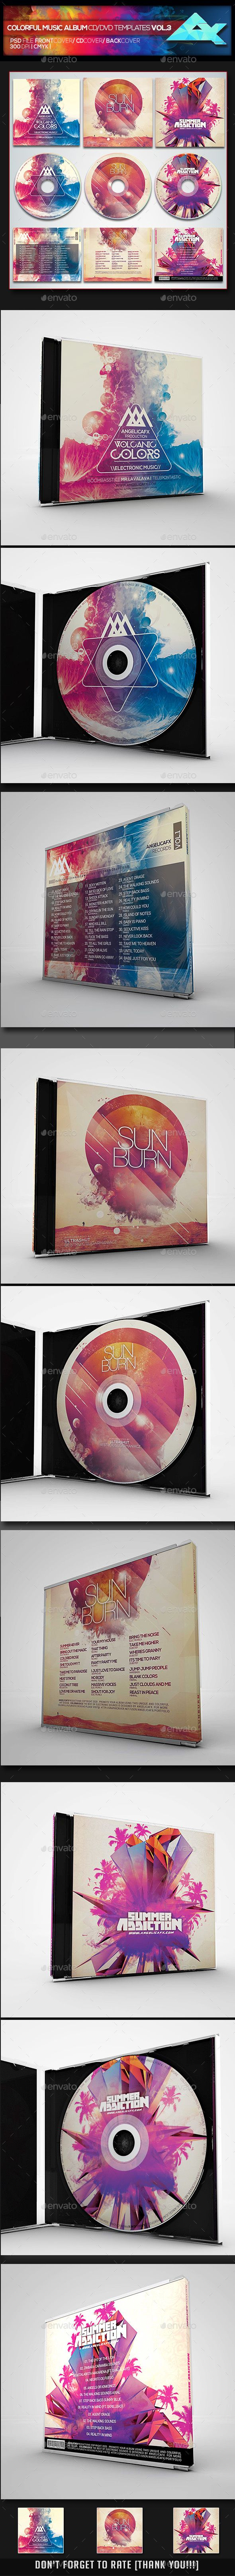 colorful cd dvd album covers bundle cd dvd cover templates